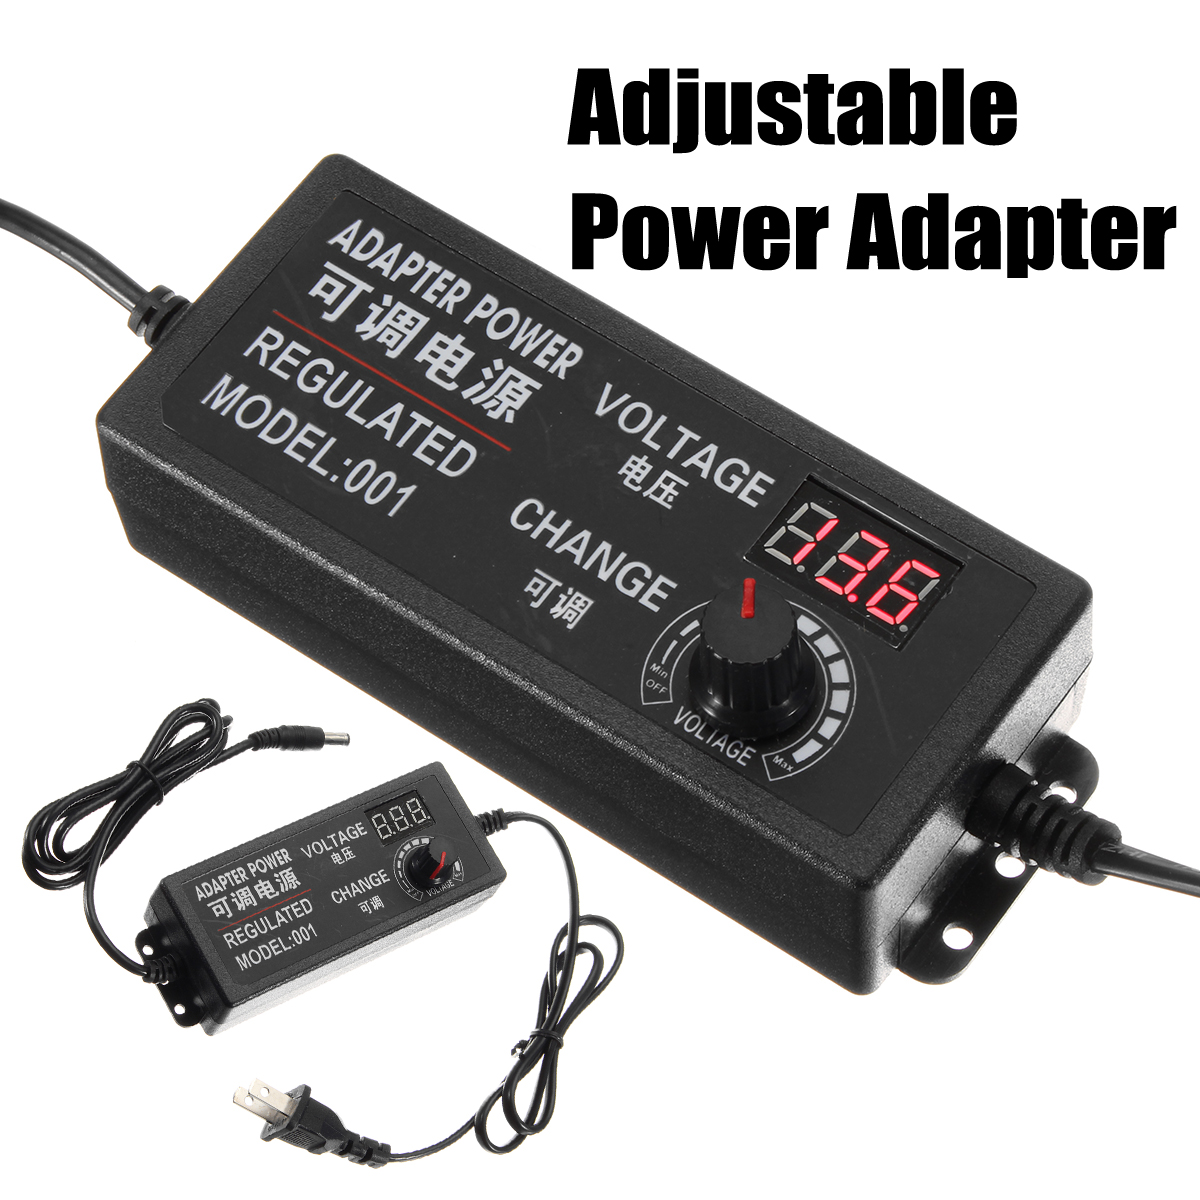 LEORY AC/DC Adjustable Power Adapter Supply 9-24V 3A 72W Change Power Supply US Plug Speed Control Volt Display Multi-protectionLEORY AC/DC Adjustable Power Adapter Supply 9-24V 3A 72W Change Power Supply US Plug Speed Control Volt Display Multi-protection